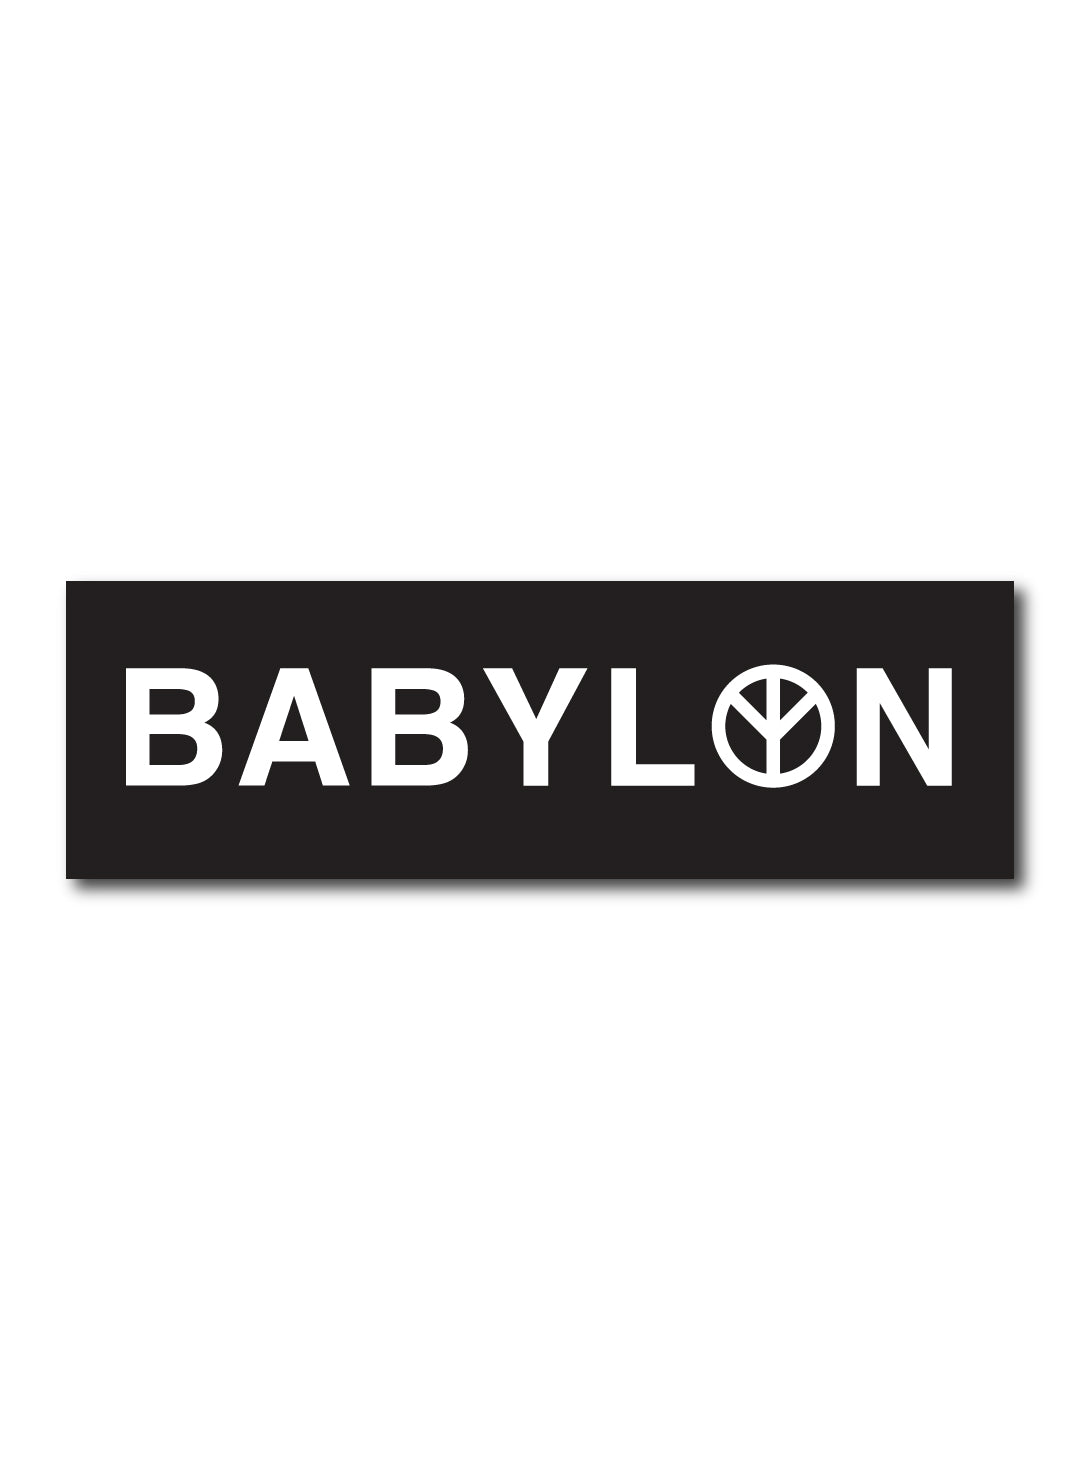 BABYLON STICKER